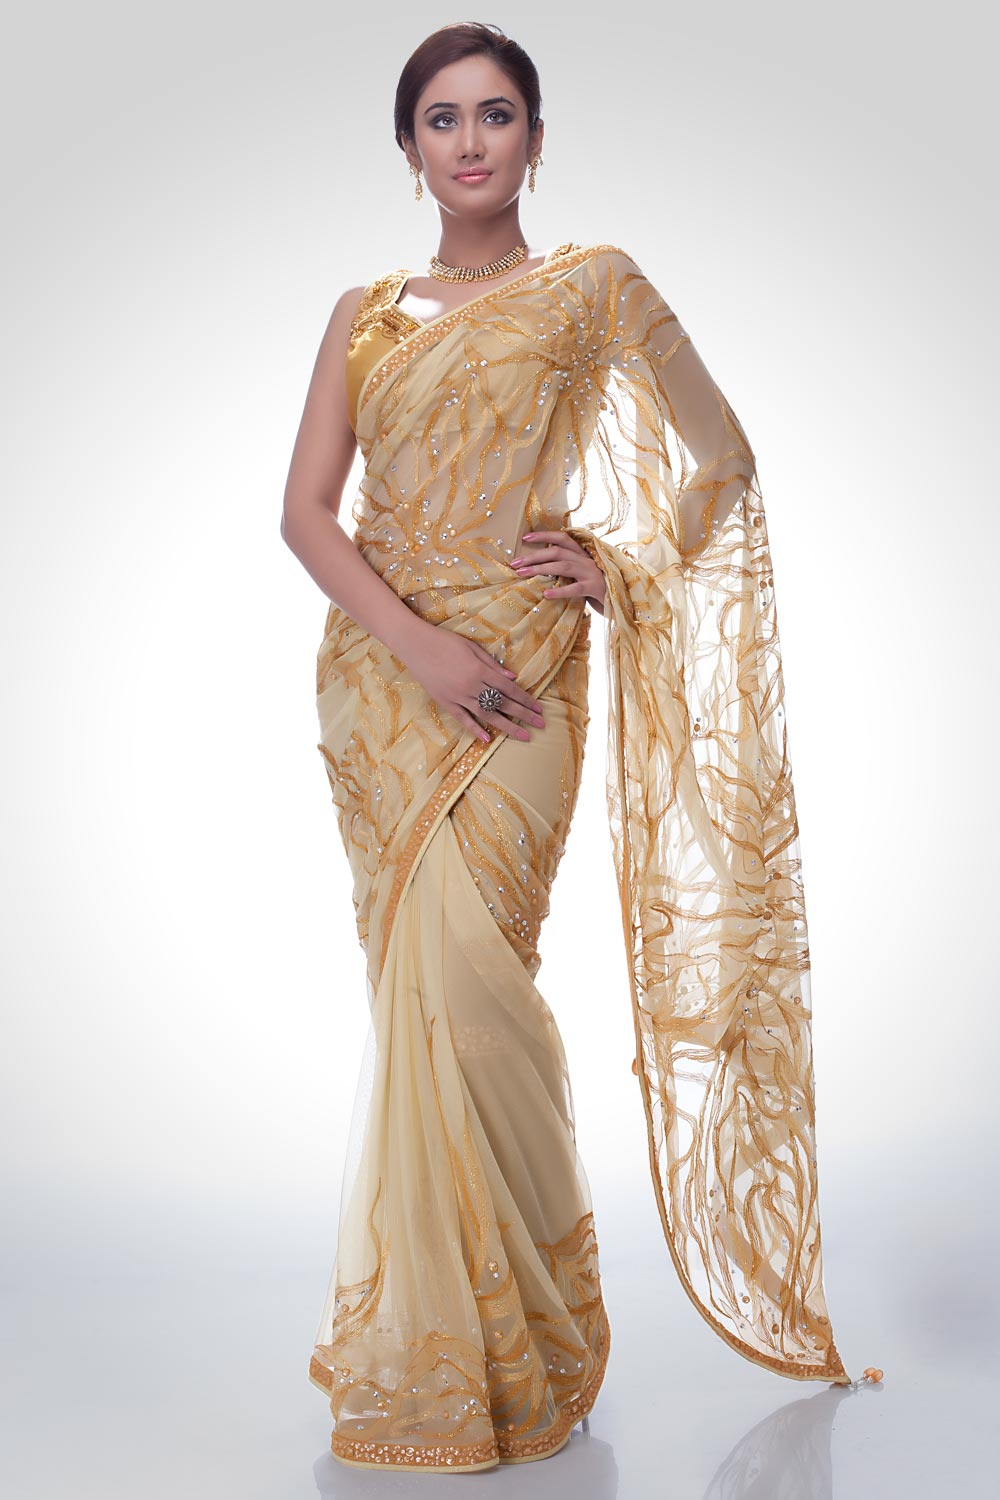 Indian Embroidered Sarees New Saree Trends Satya Paul Saree Collection 2012 2013 Latest